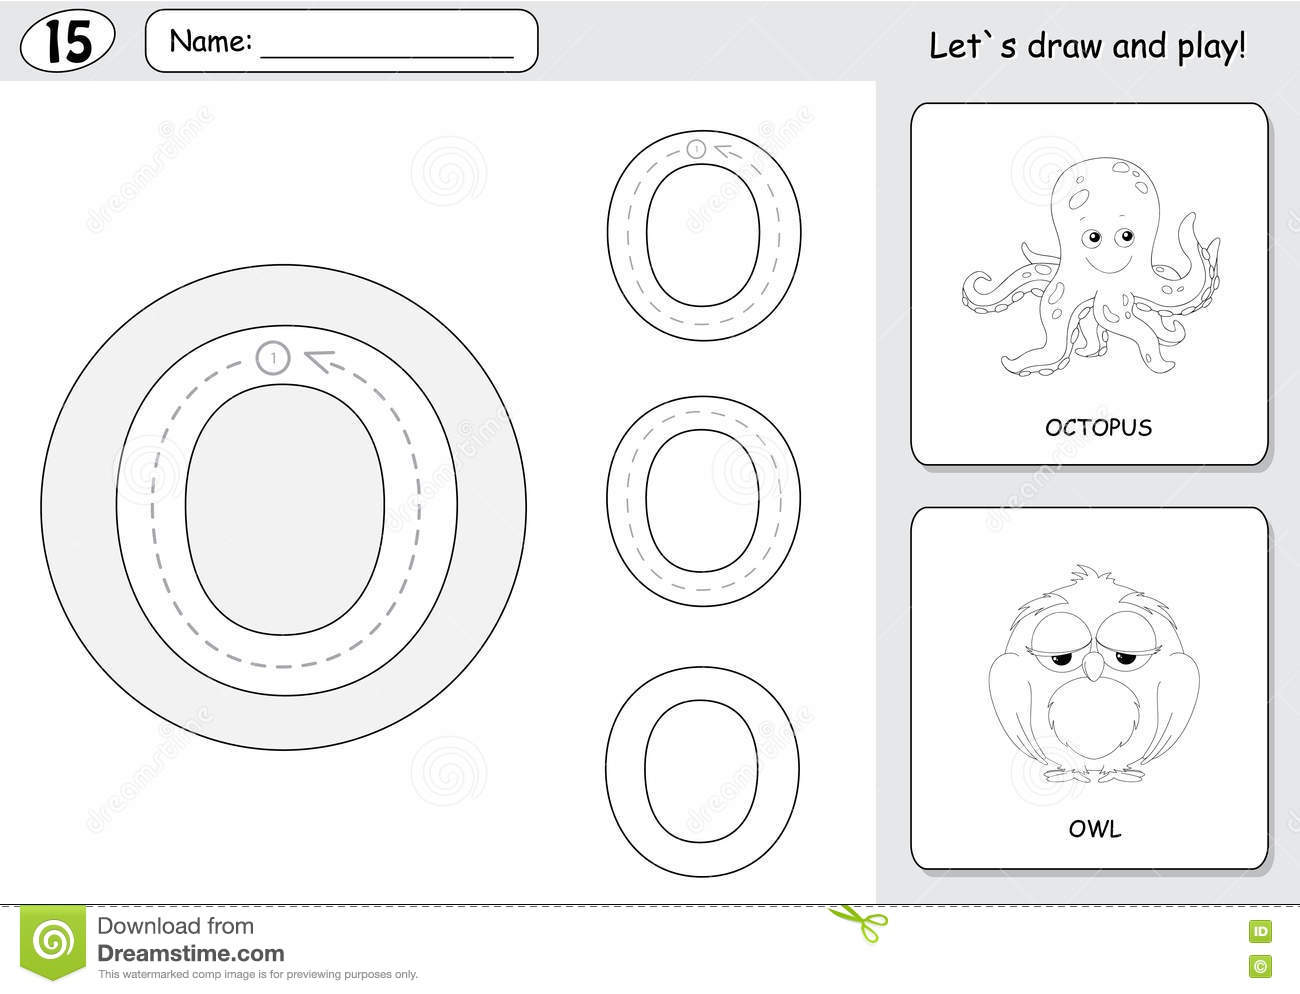 Cartoon Octopus And Owl Alphabet Tracing Worksheet